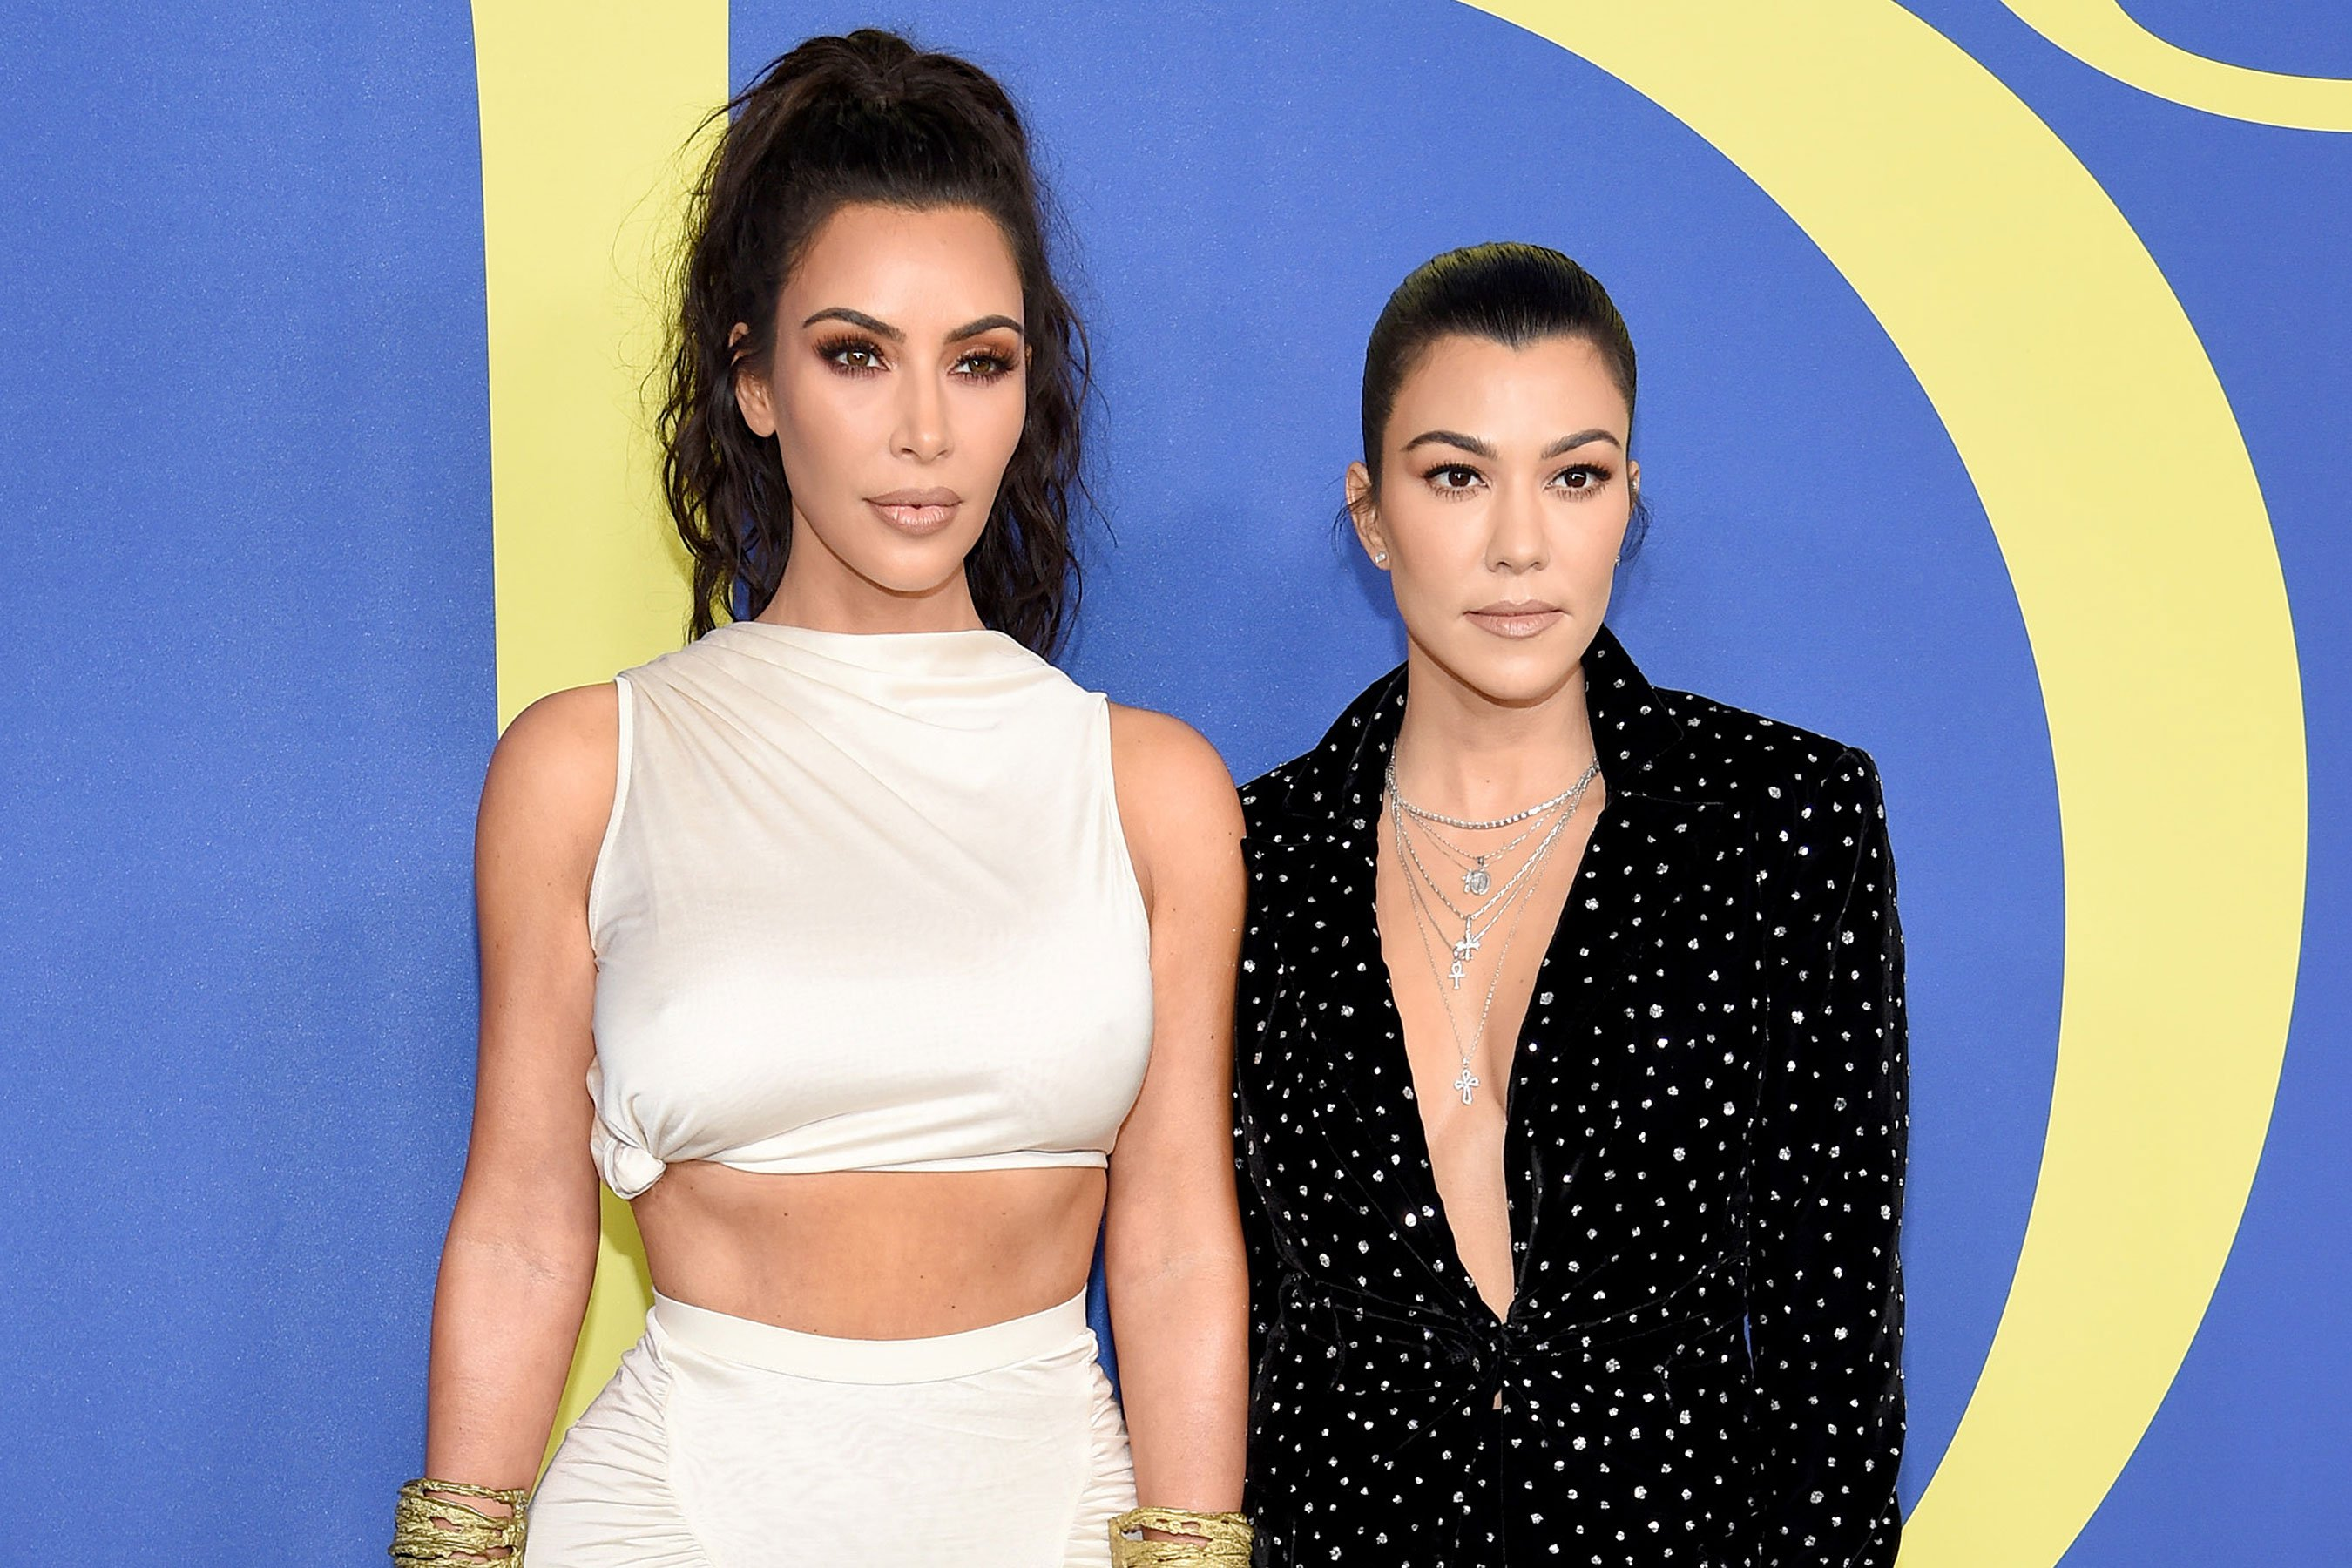 Find Out When Kim Kardashian West's New Prank Show Premieres (Her Family Will Be on It!)